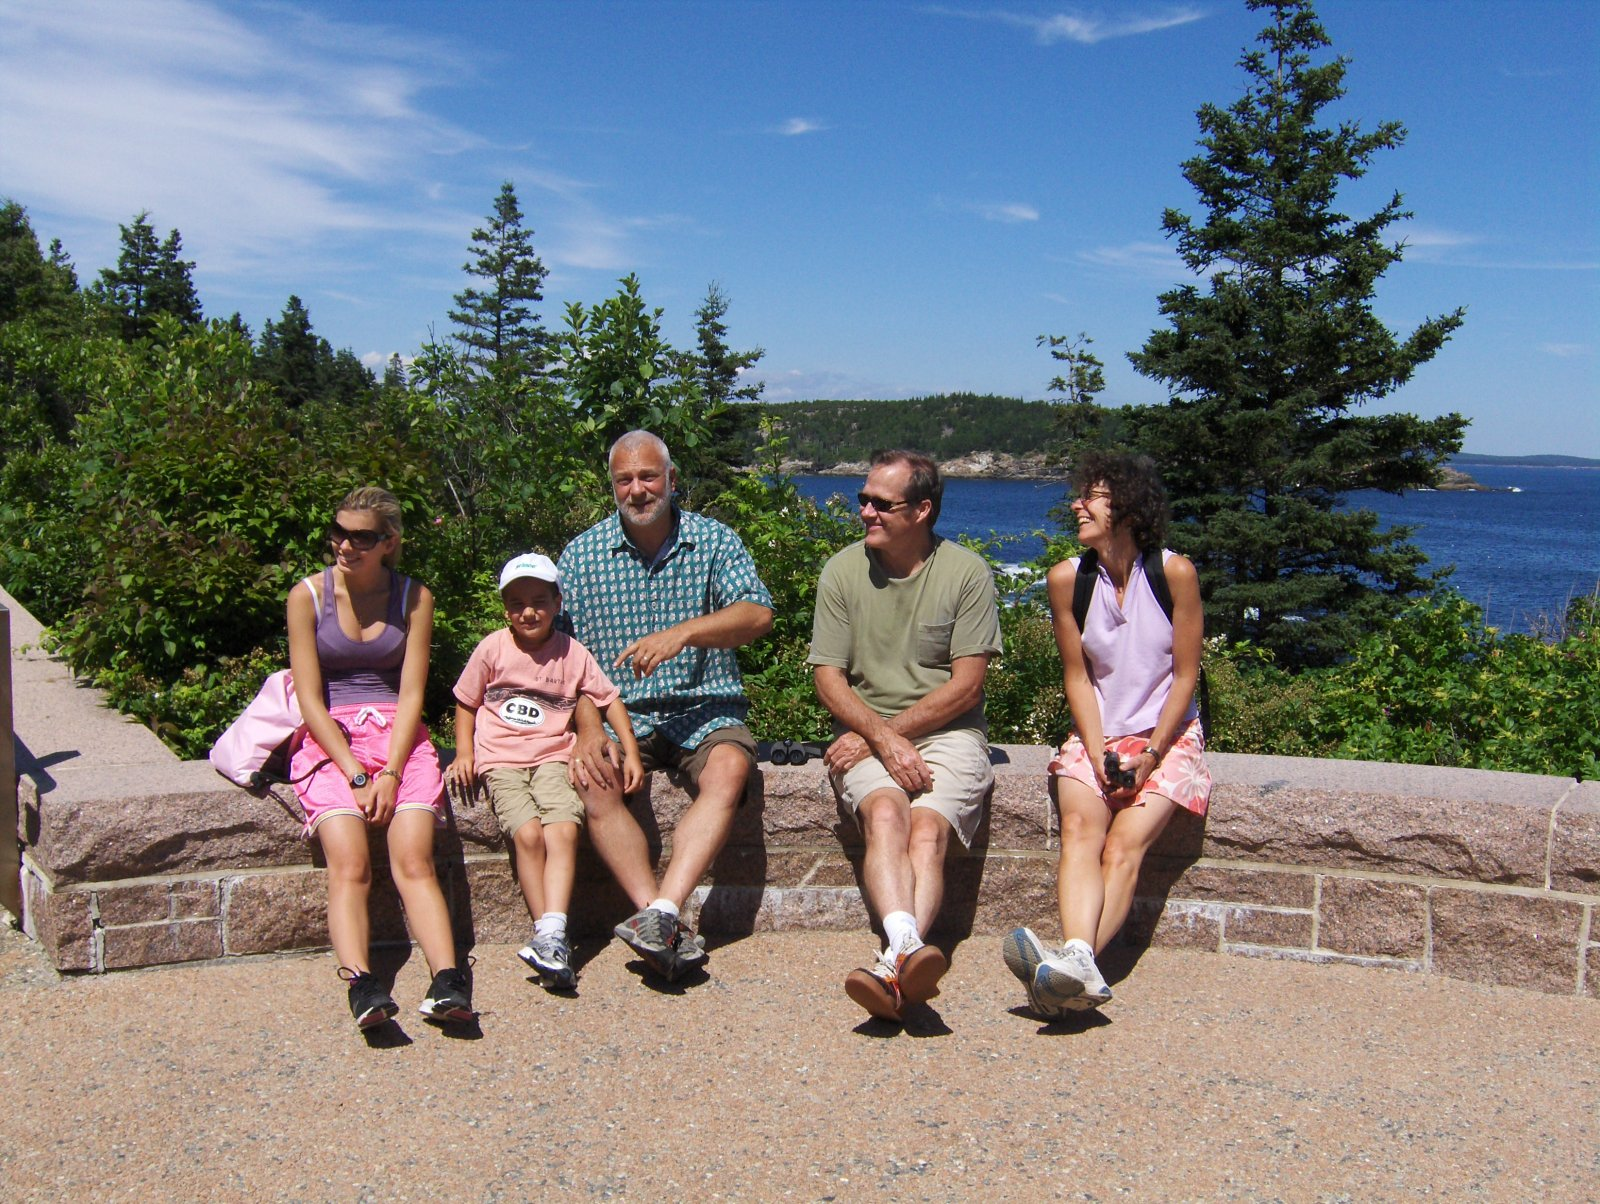 Click image for larger version  Name:Acadia 09 037.jpg Views:99 Size:486.5 KB ID:84693